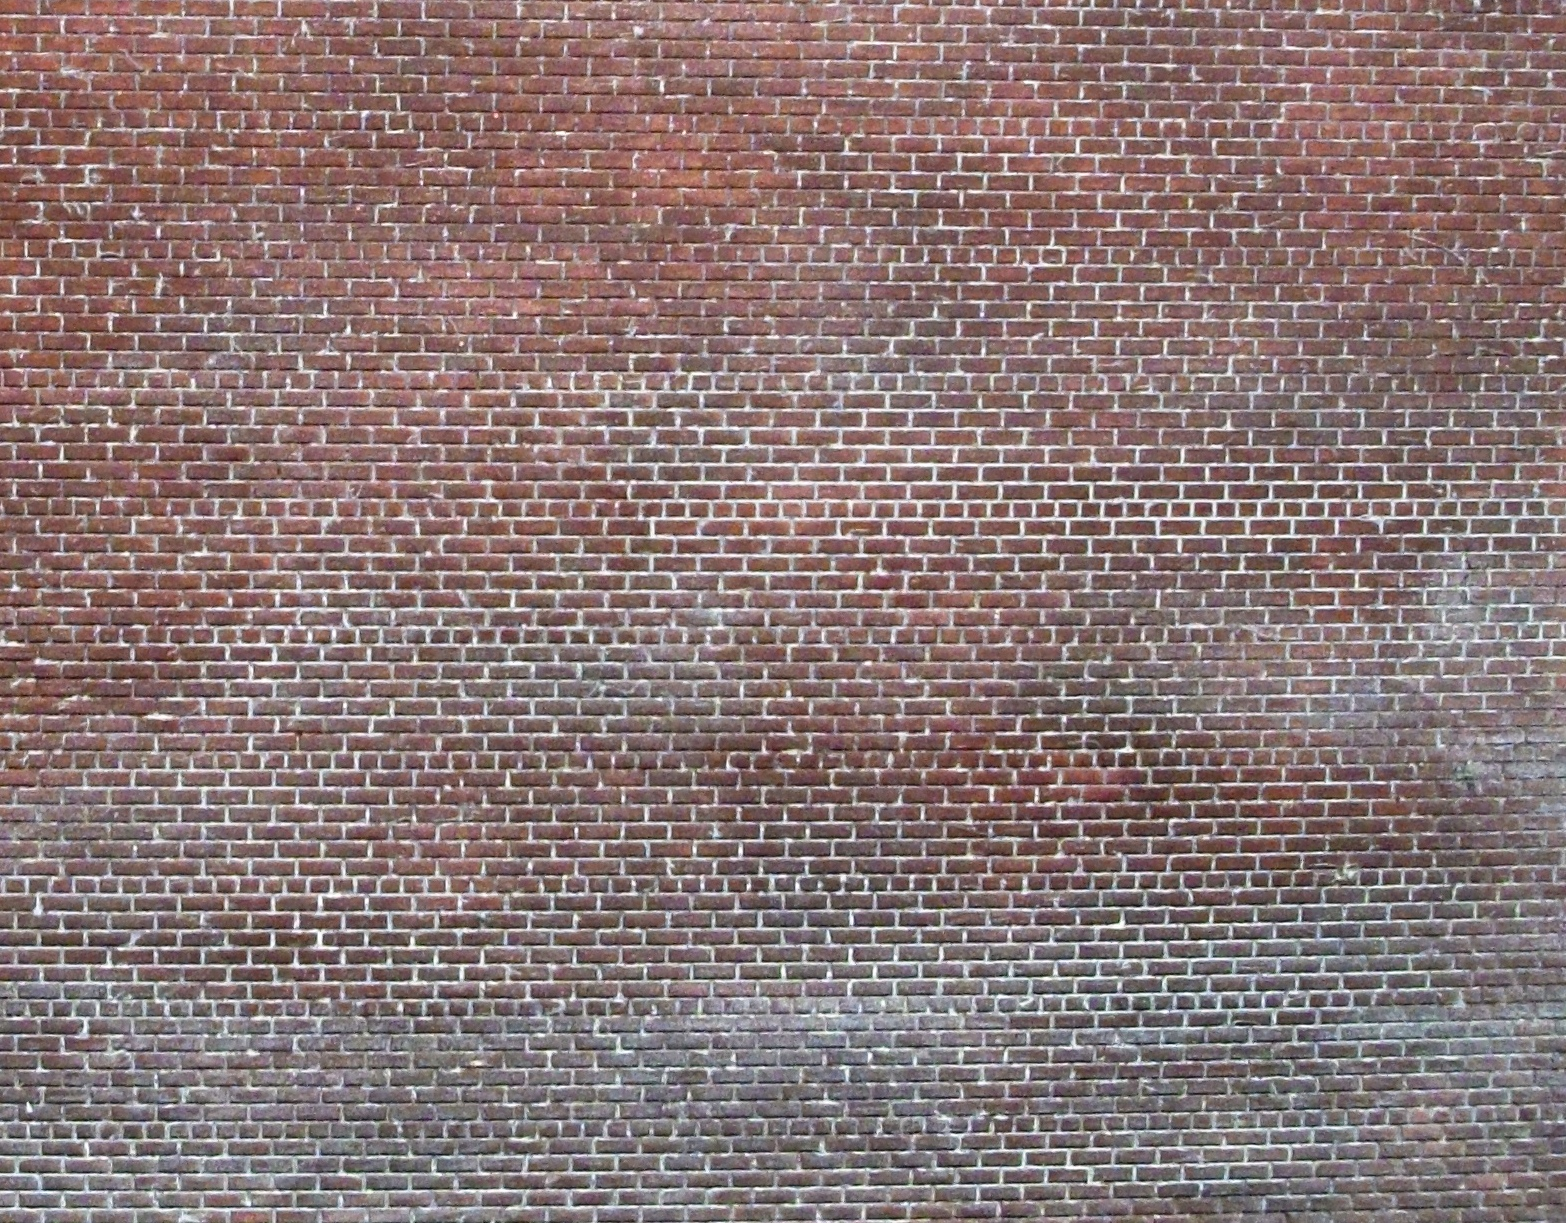 Ho Scale Brick Walls New England Brownstone